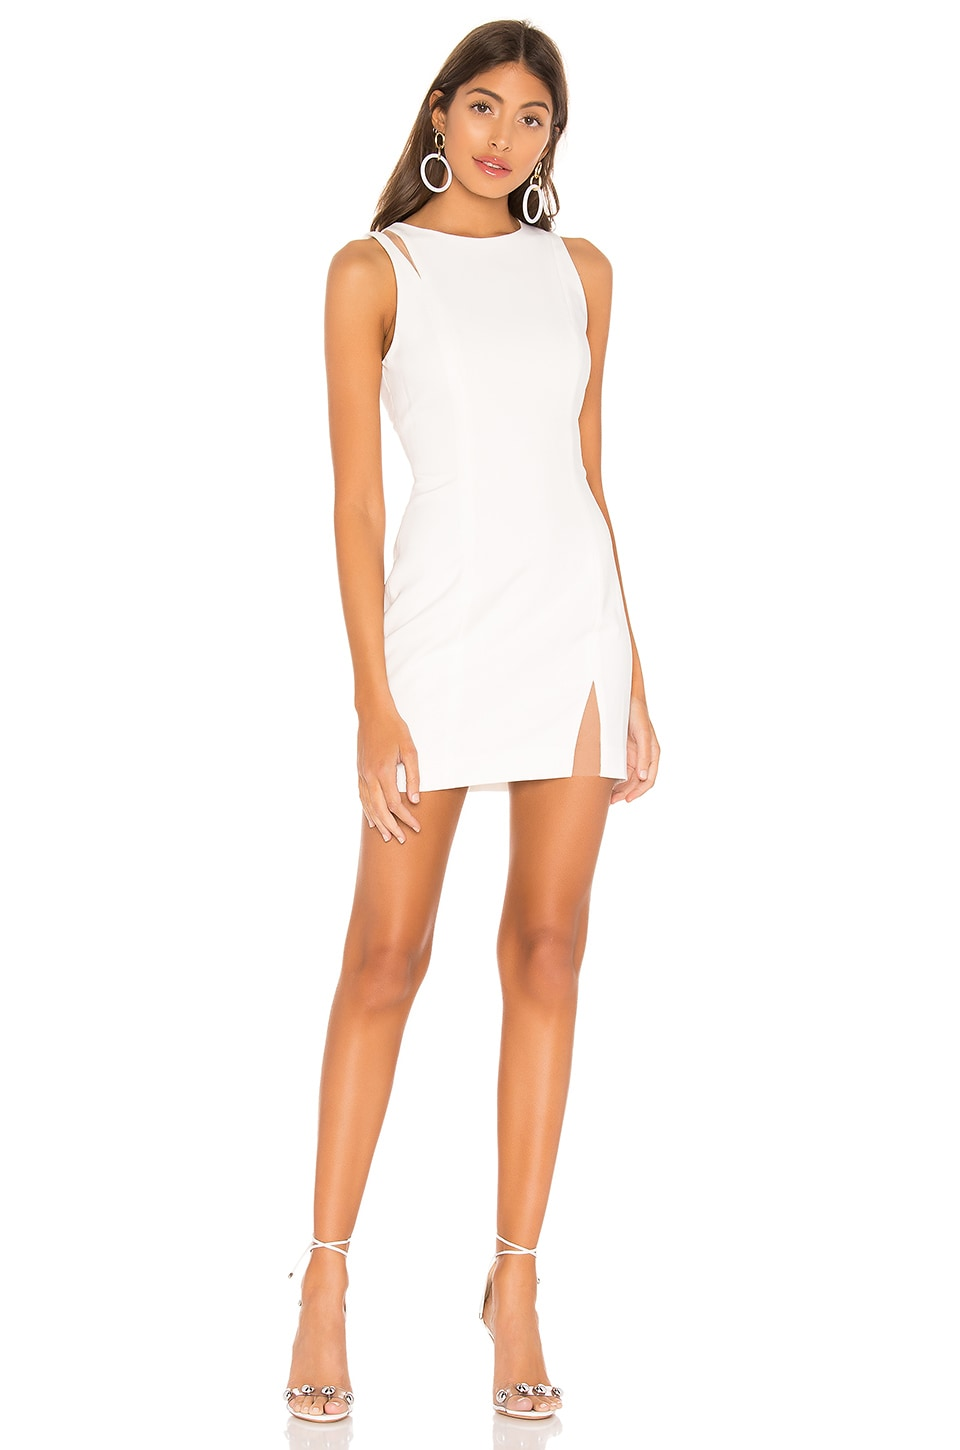 Mulan Mini Dress             NBD                                                                                                       CA$ 267.30 4